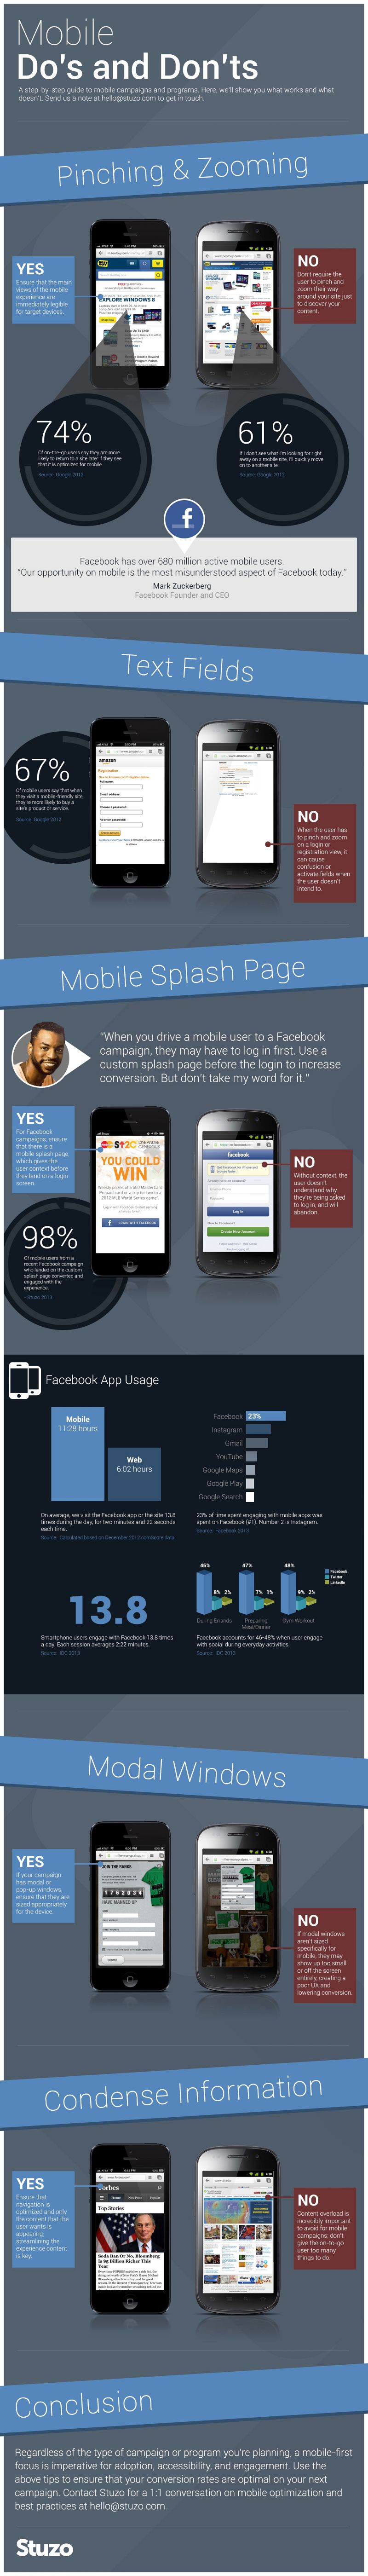 12 Facebook Mobile Advertising Campaign Tips Mobile Advertising